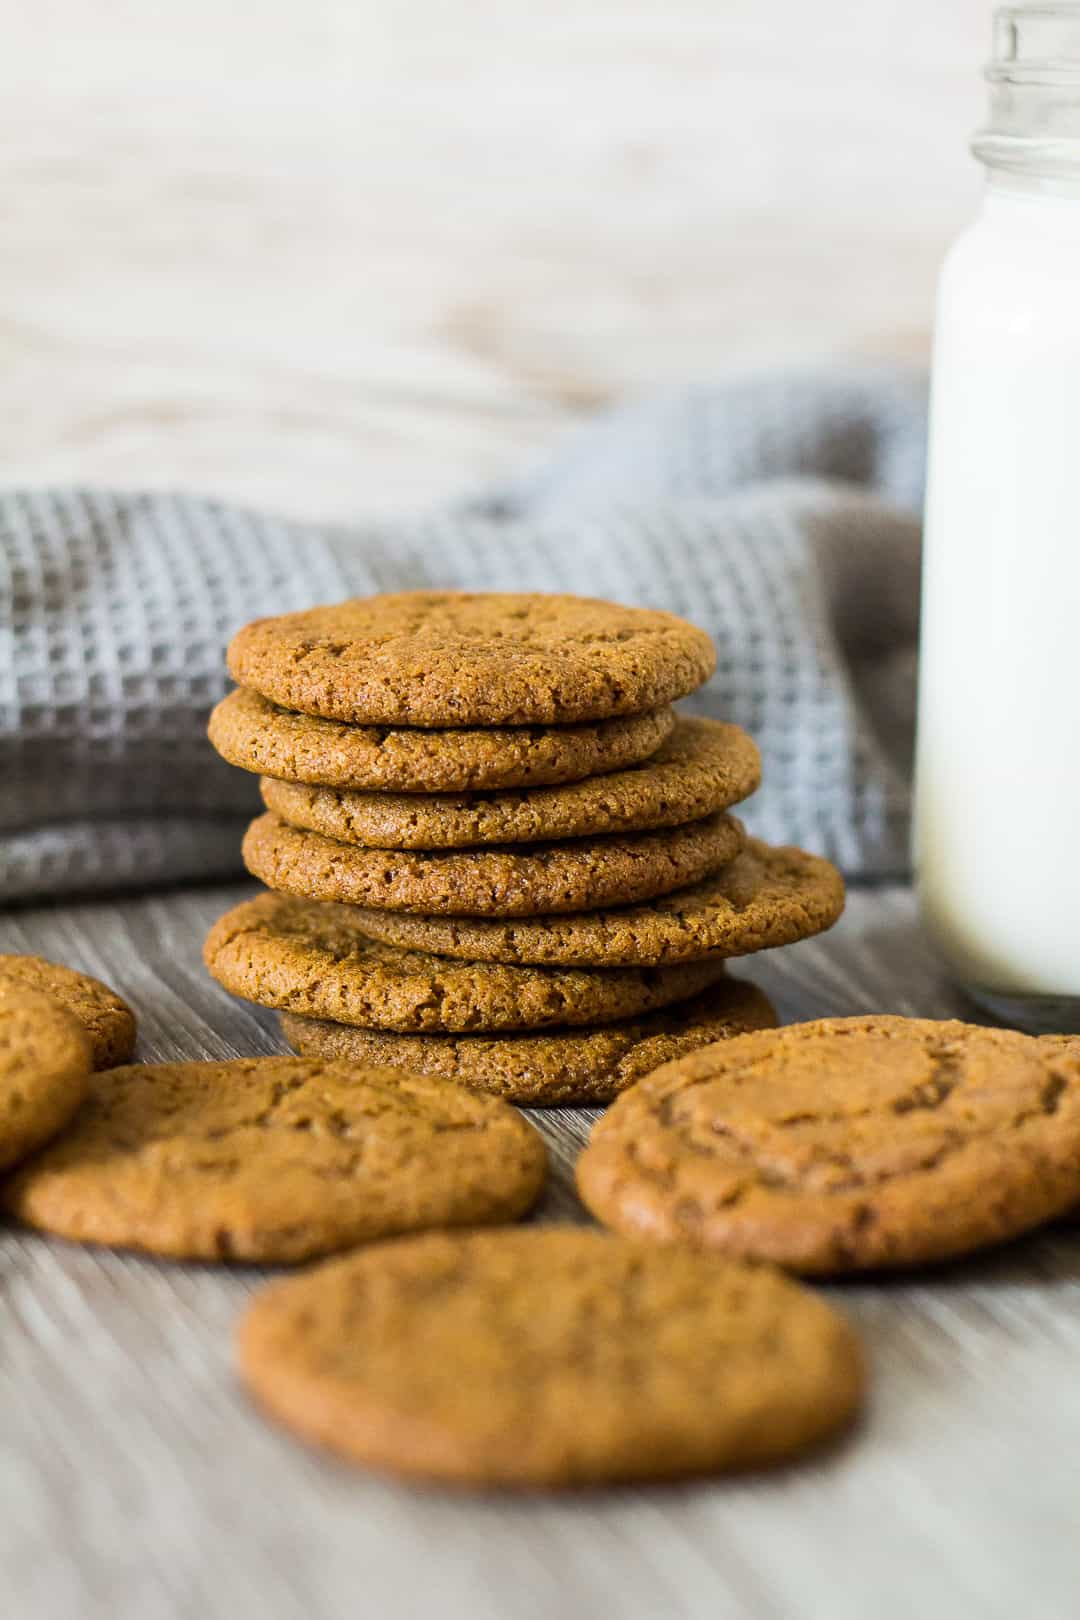 A stack of Homemade Gingernut Cookies next to a glass of milk.